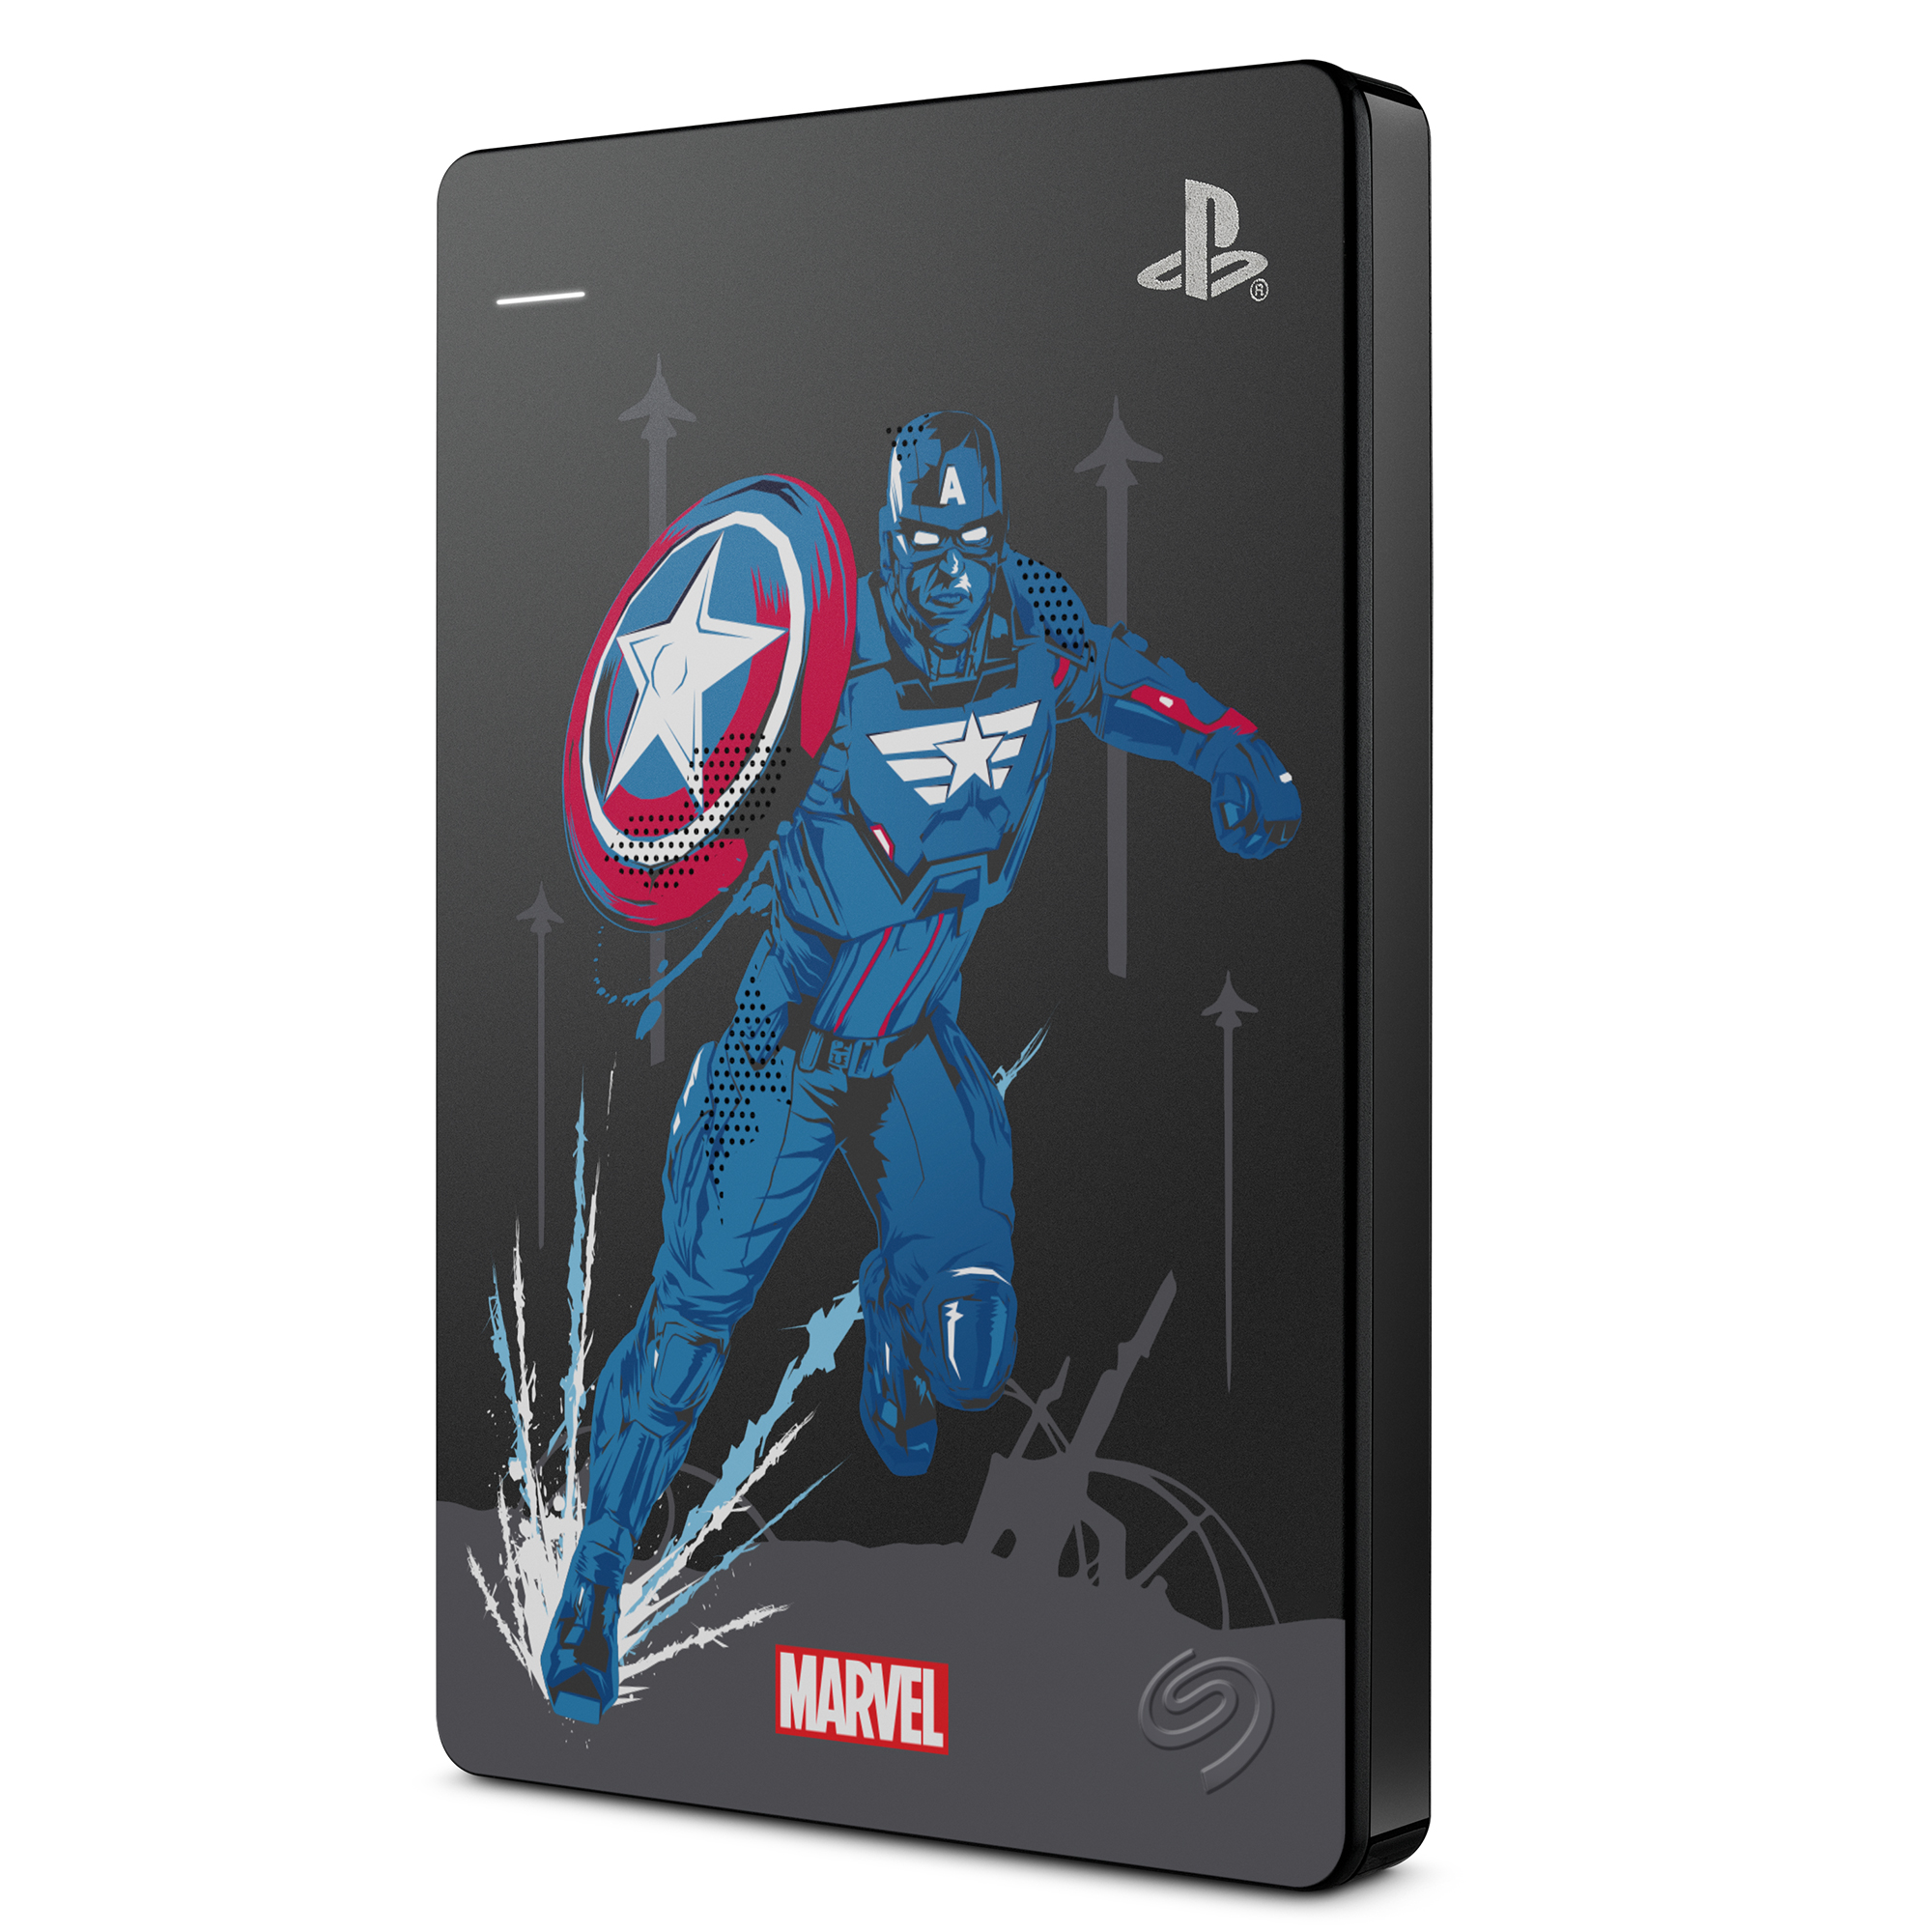 씨게이트 Game Drive for PS4 Marvels 외장하드, 2TB, Captain America